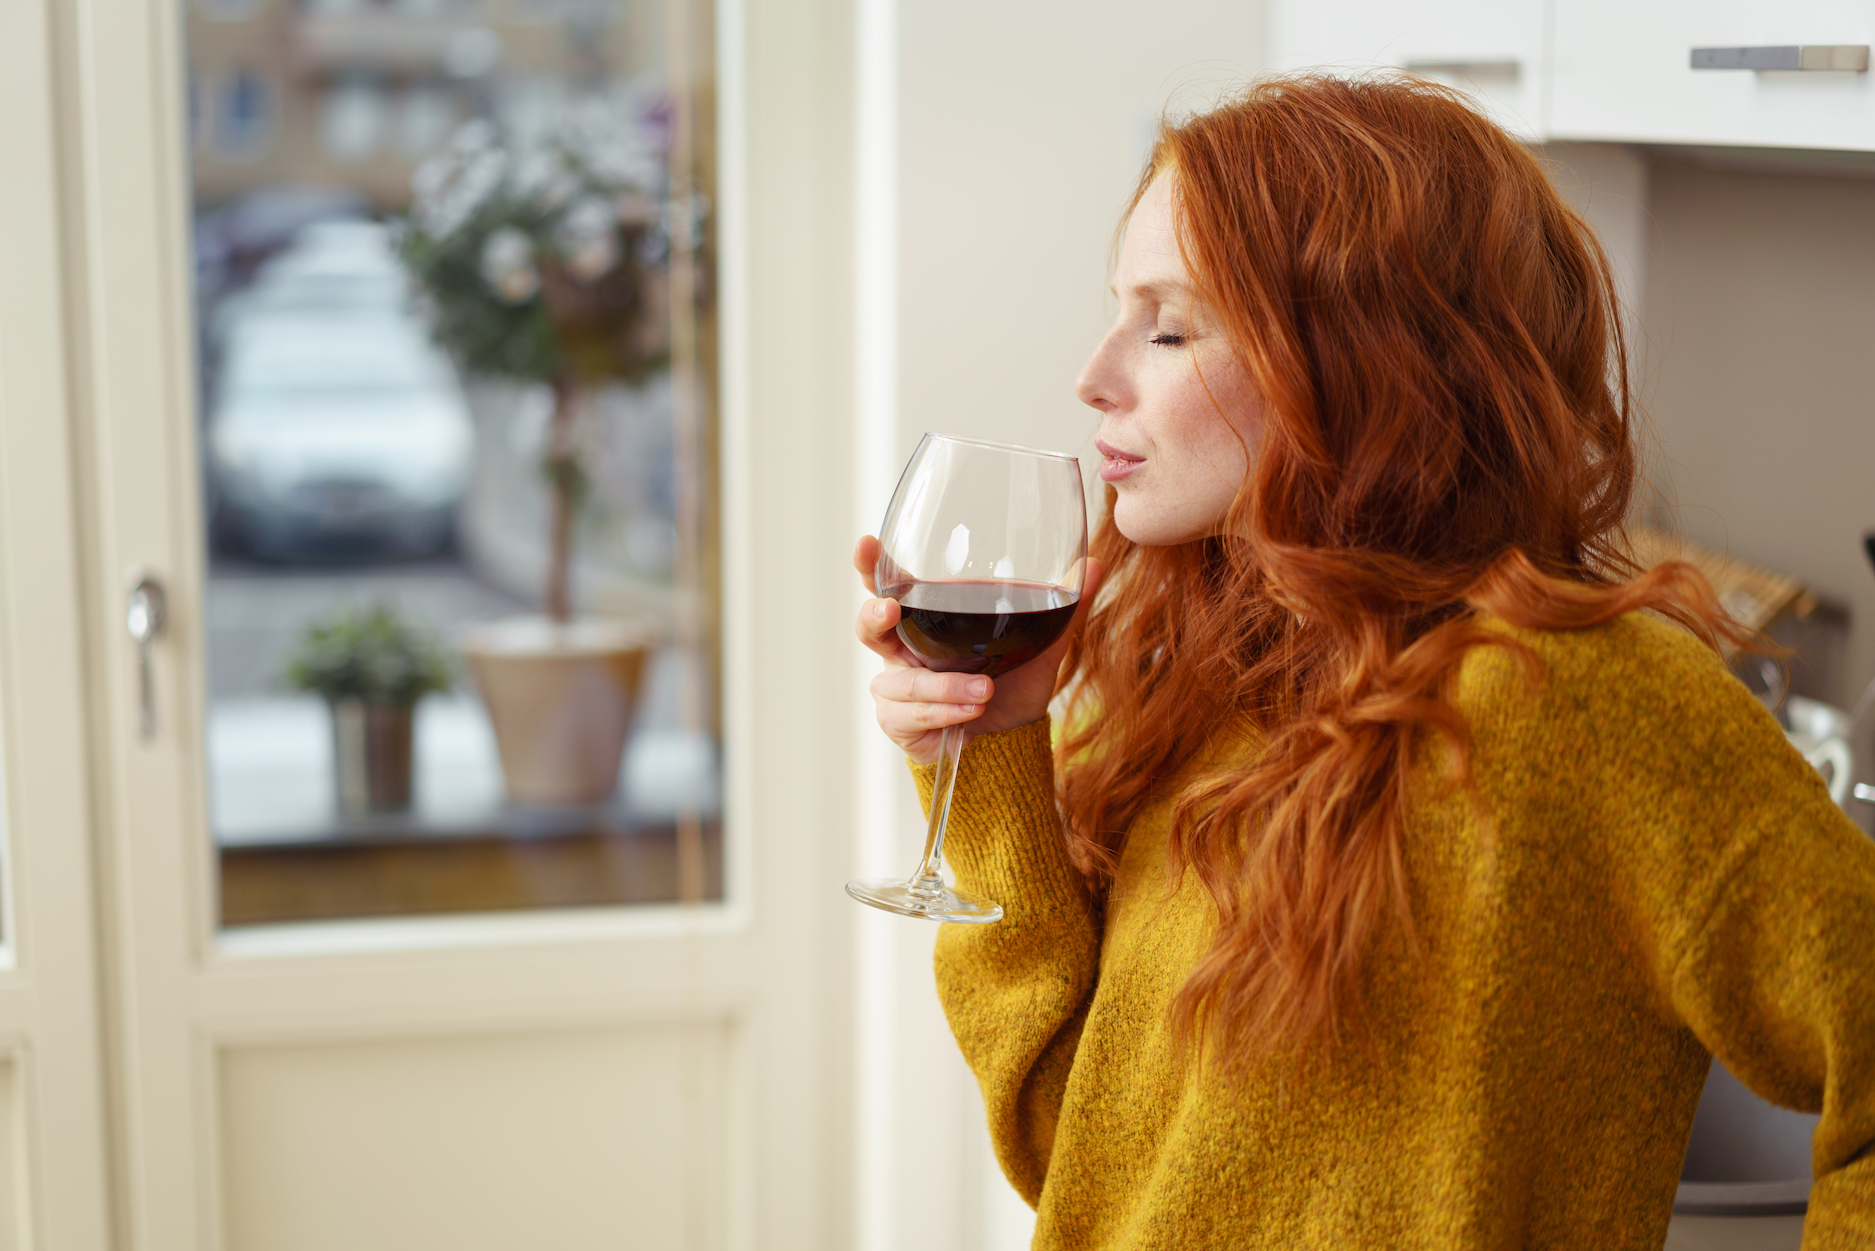 New research suggests that drinking wine may destroy the bacteria that cause bad breath, gum disease, and cavities.